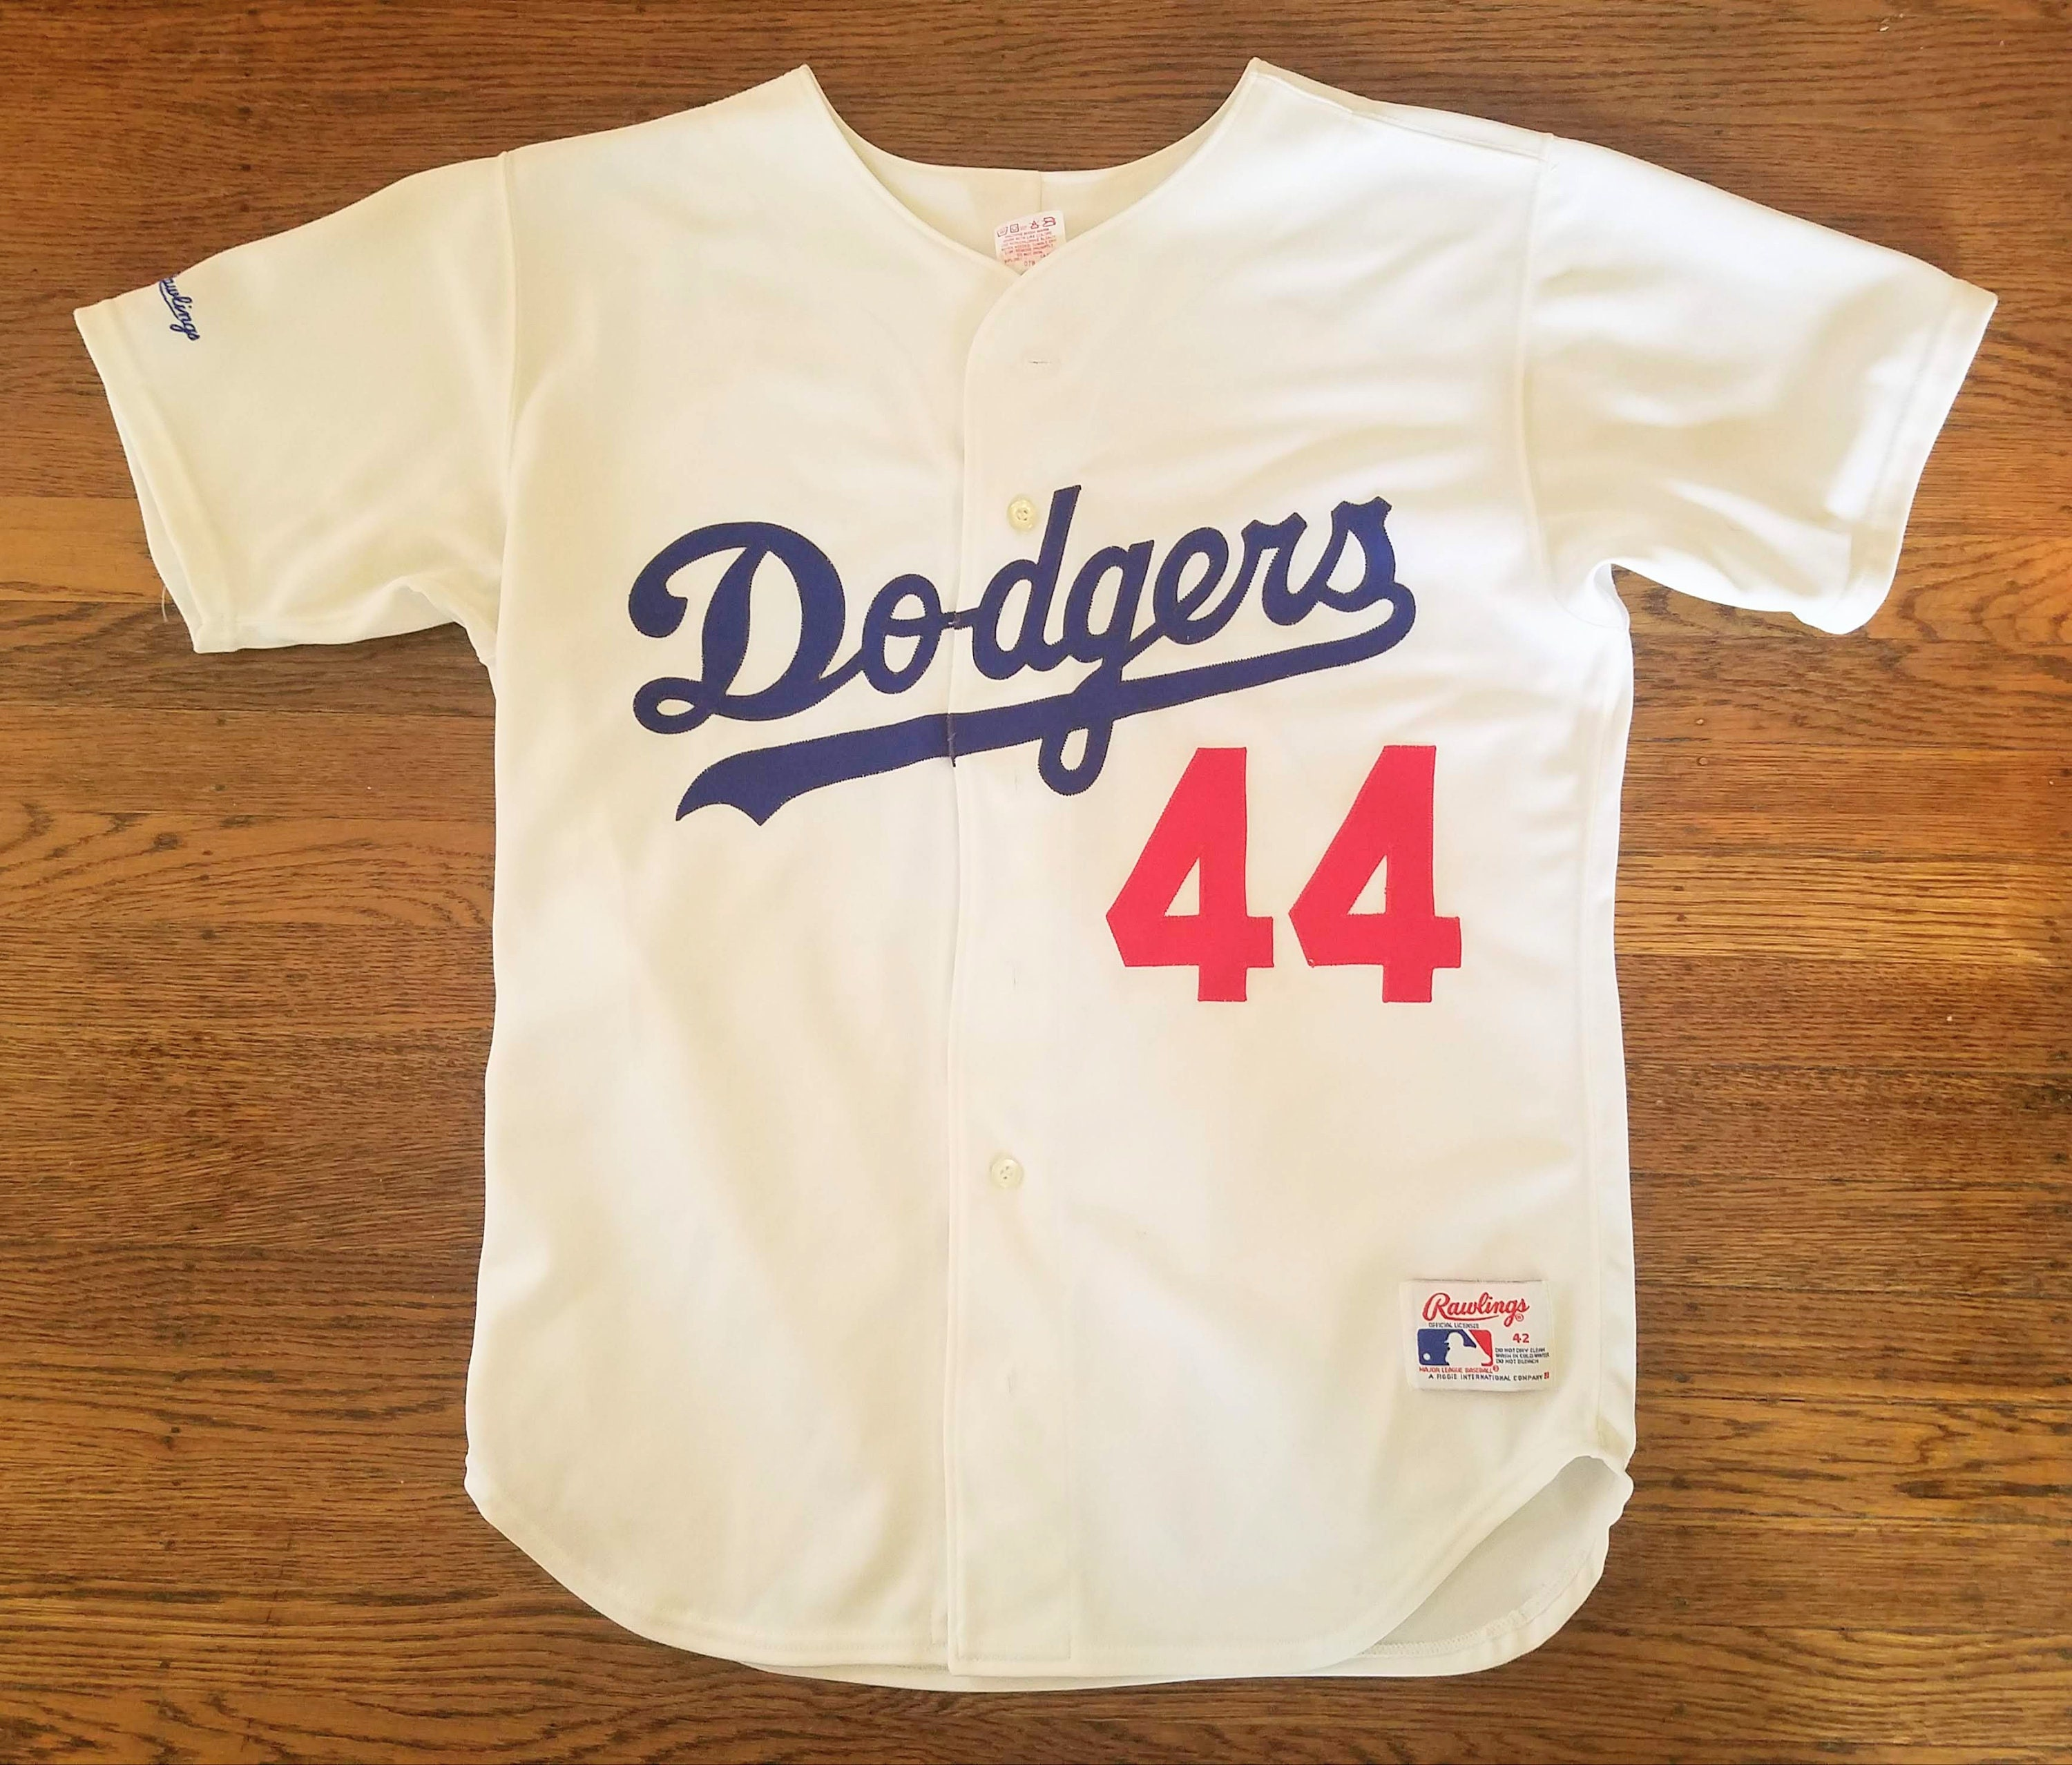 c70a9478570 Darryl Strawberry Authentic Rawlings Jersey 42 M L Dodgers